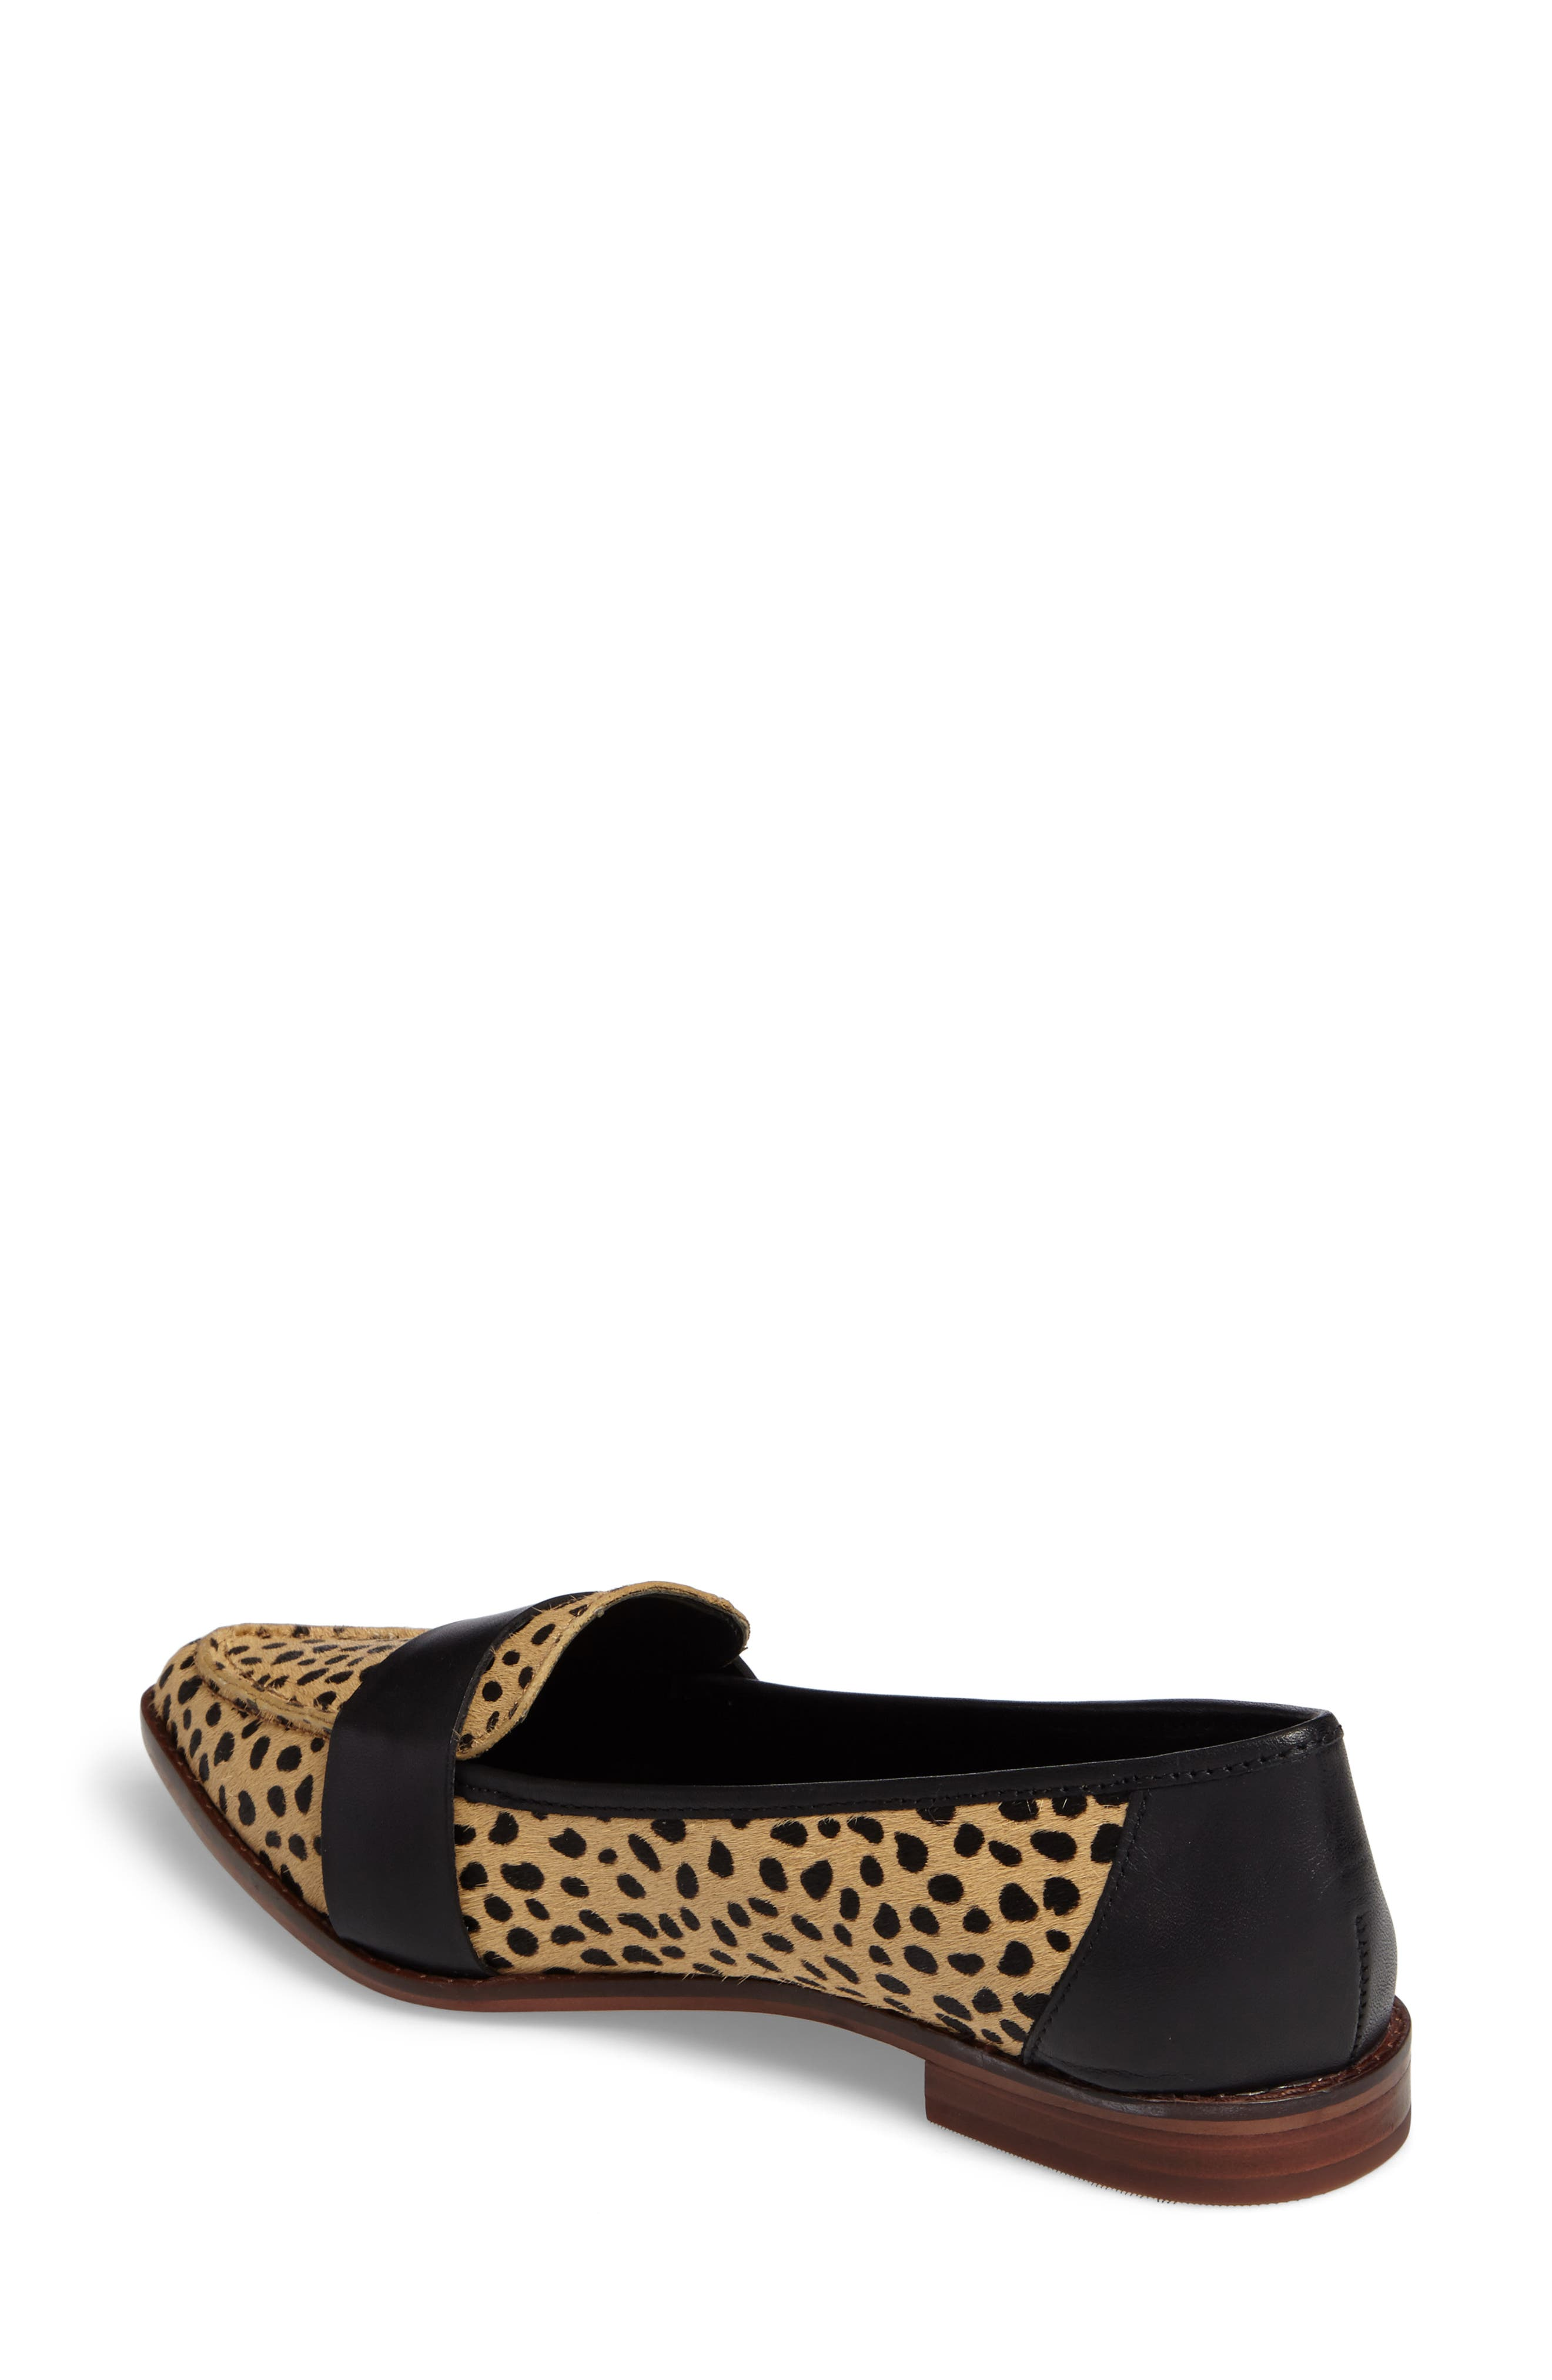 Edie Pointy Toe Loafer,                             Alternate thumbnail 2, color,                             Cheetah Calfhair